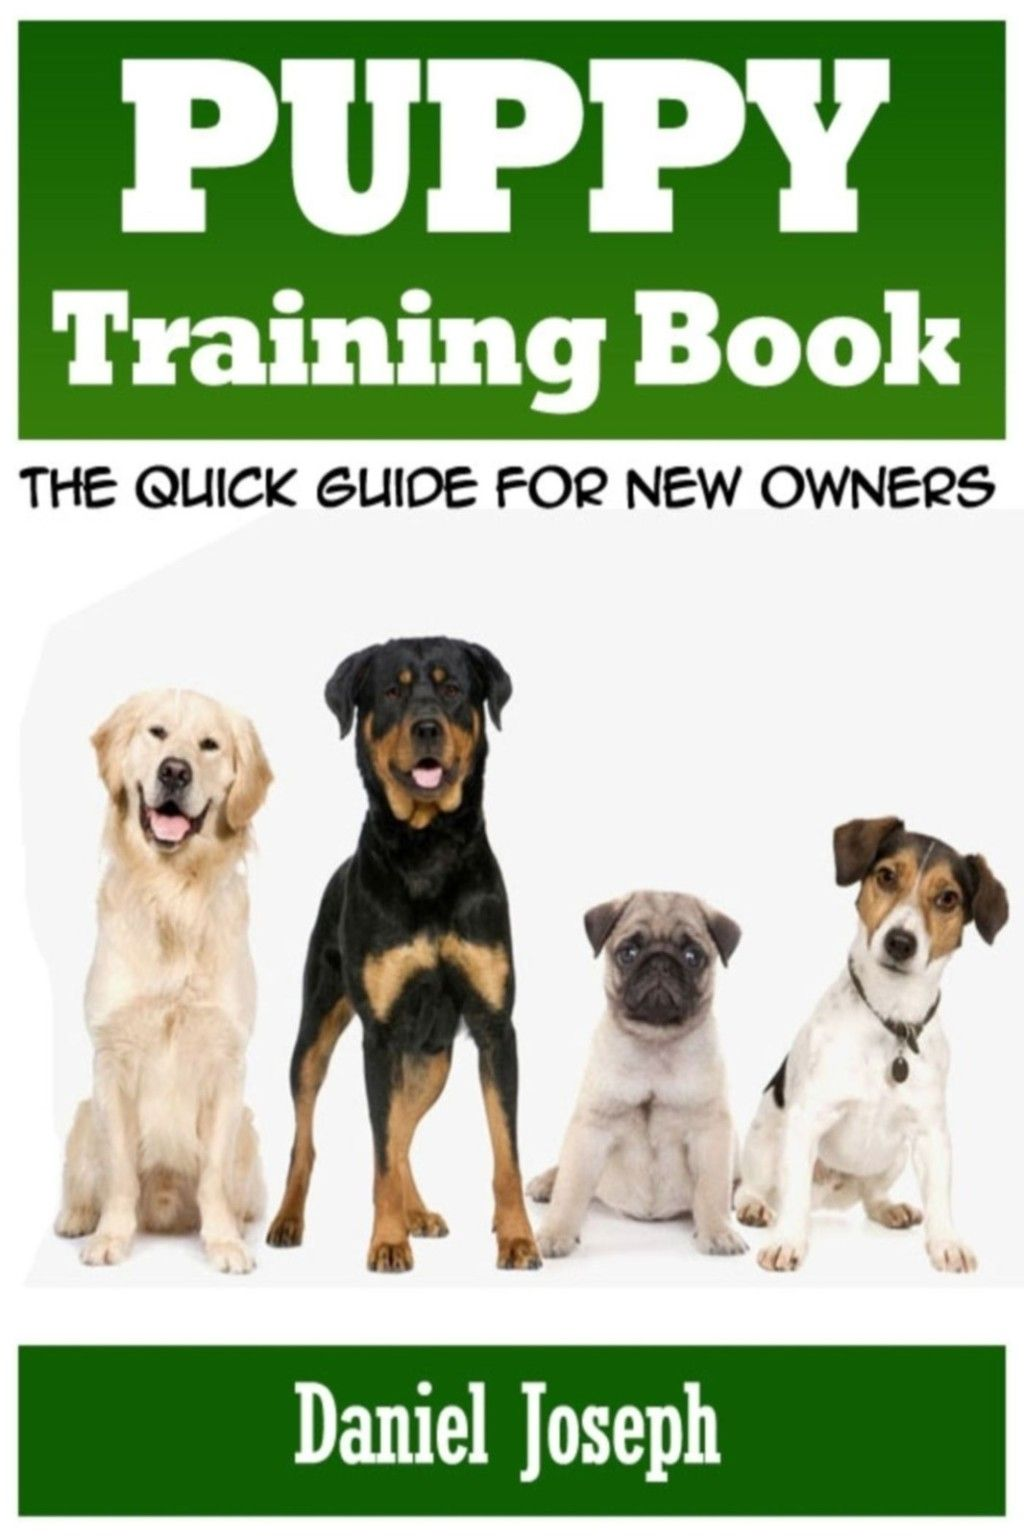 Puppy Training Book The Quick Guide For New Owners Ebook In